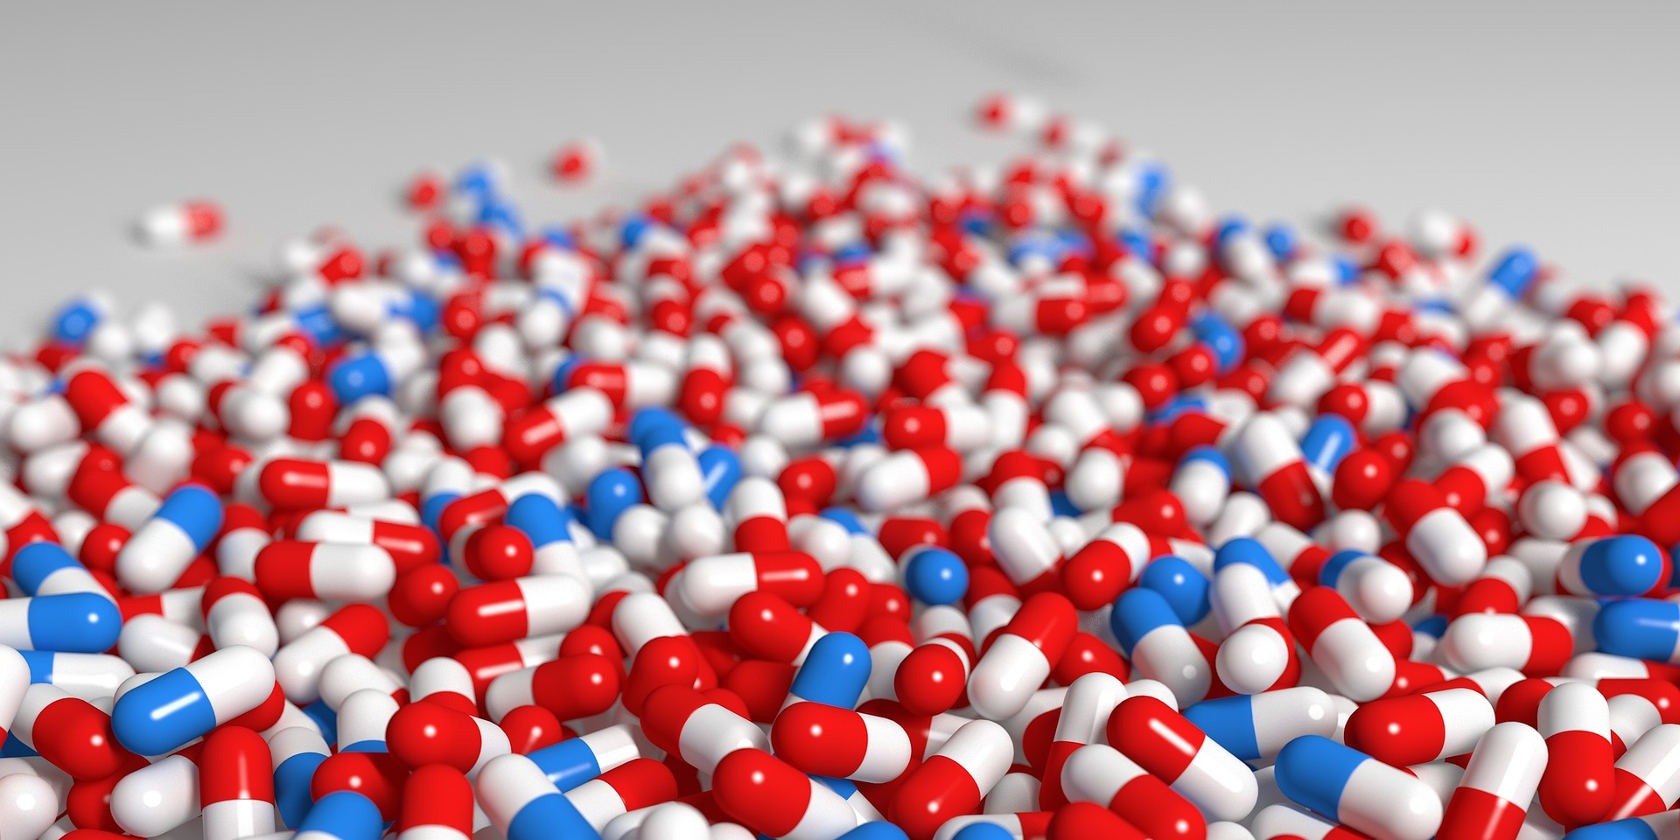 Kaneka Looks to Bring Continuous Production to Drug Factories in Japan